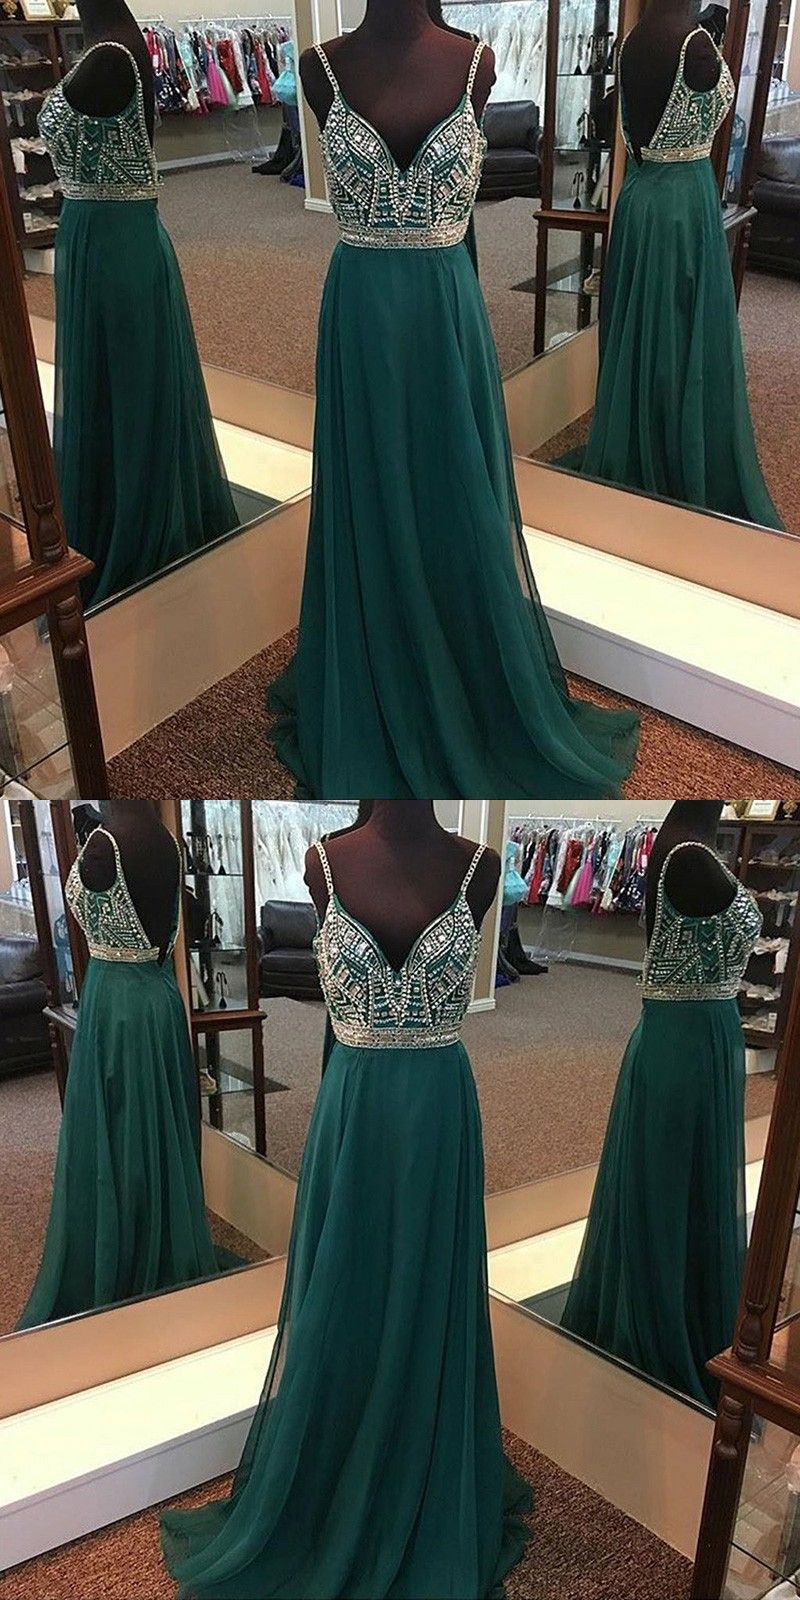 Aline spaghetti straps backless dark green chiffon prom dress with